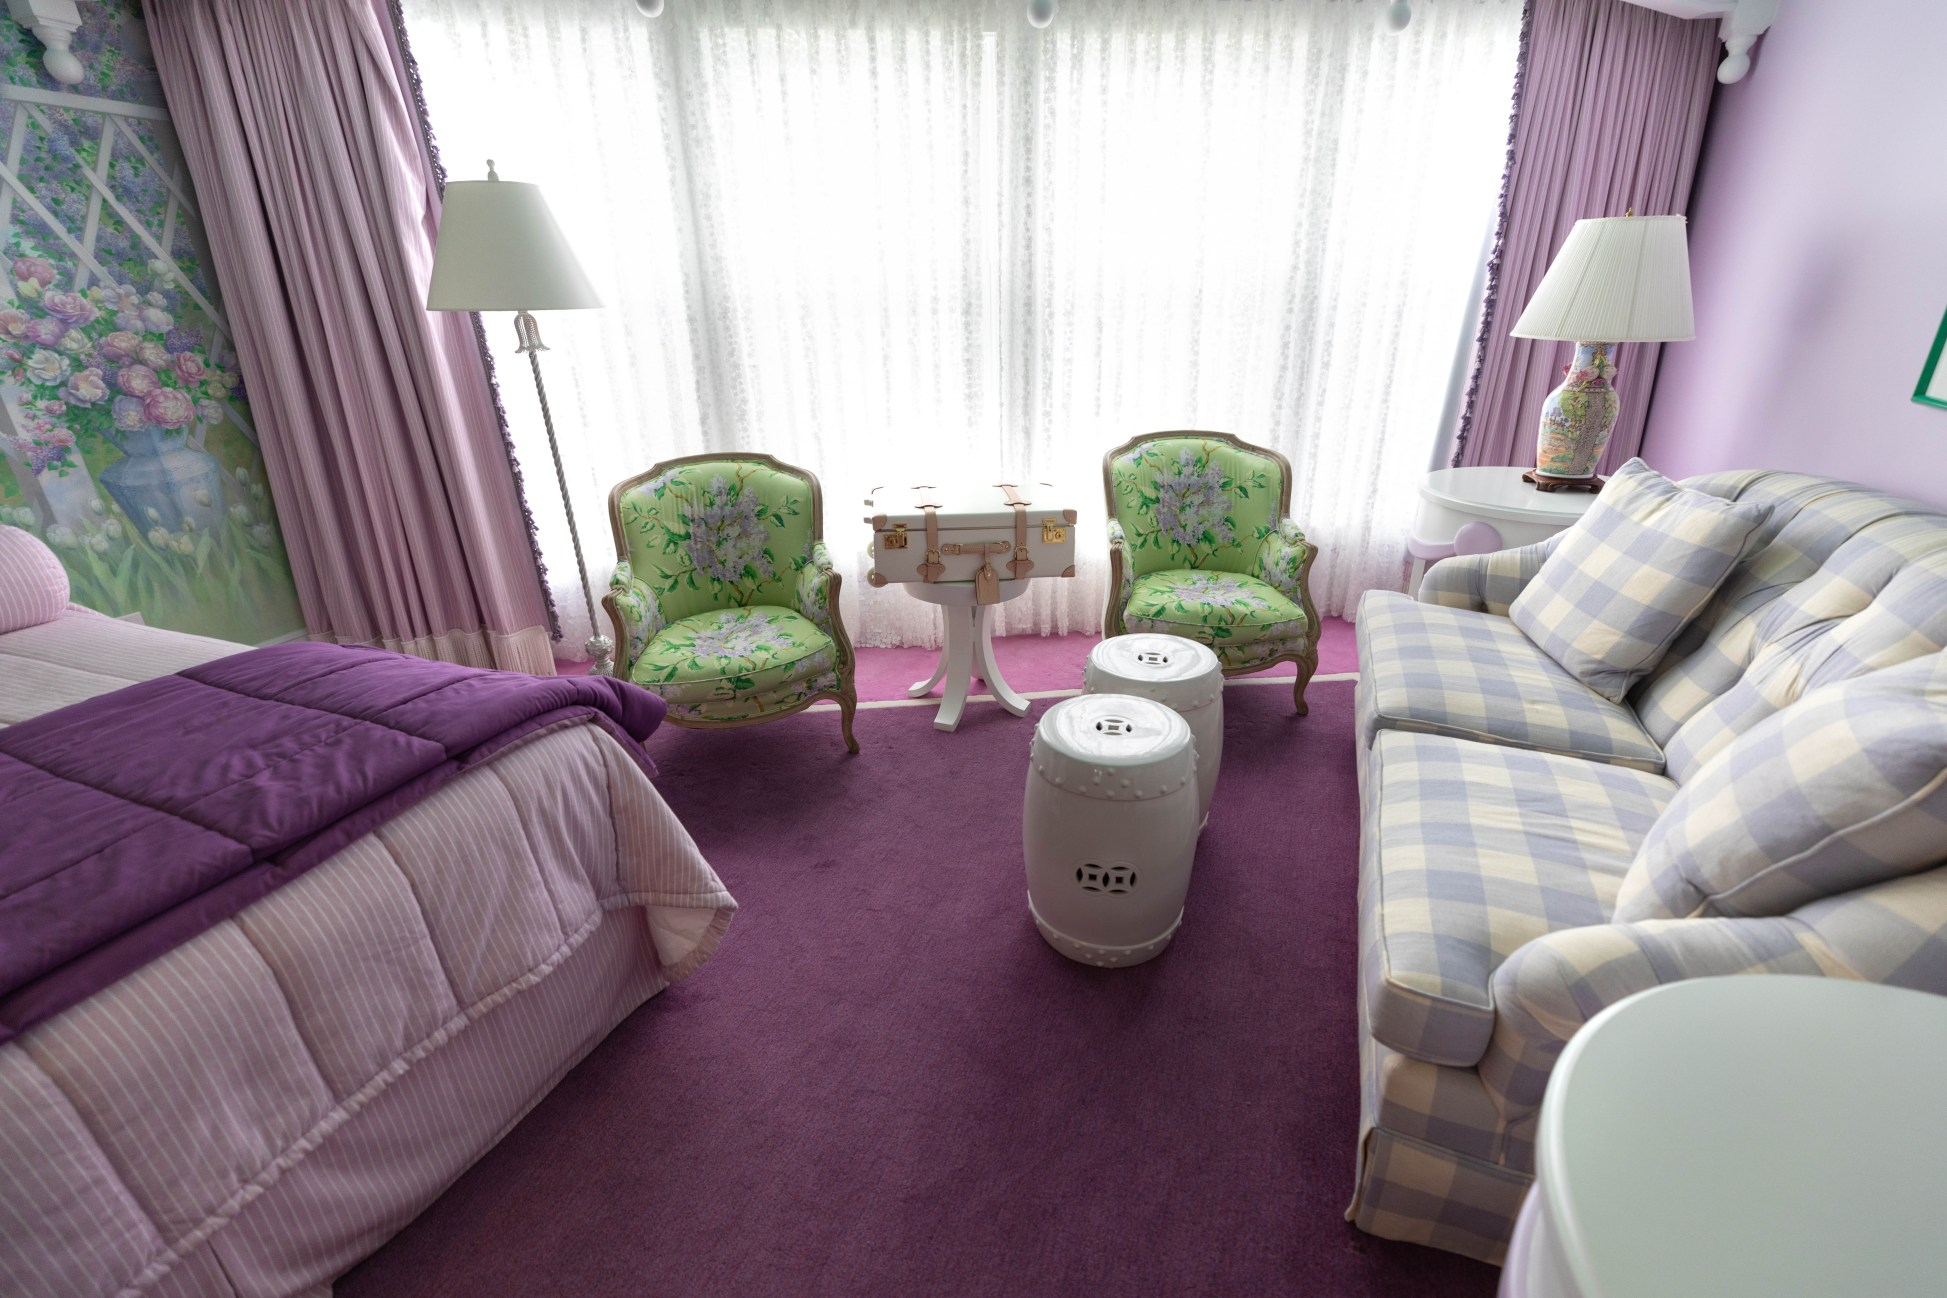 Lilac Suite at Grand Hotel on Mackinac Island Lilac Festival Luxury Hotels of the World